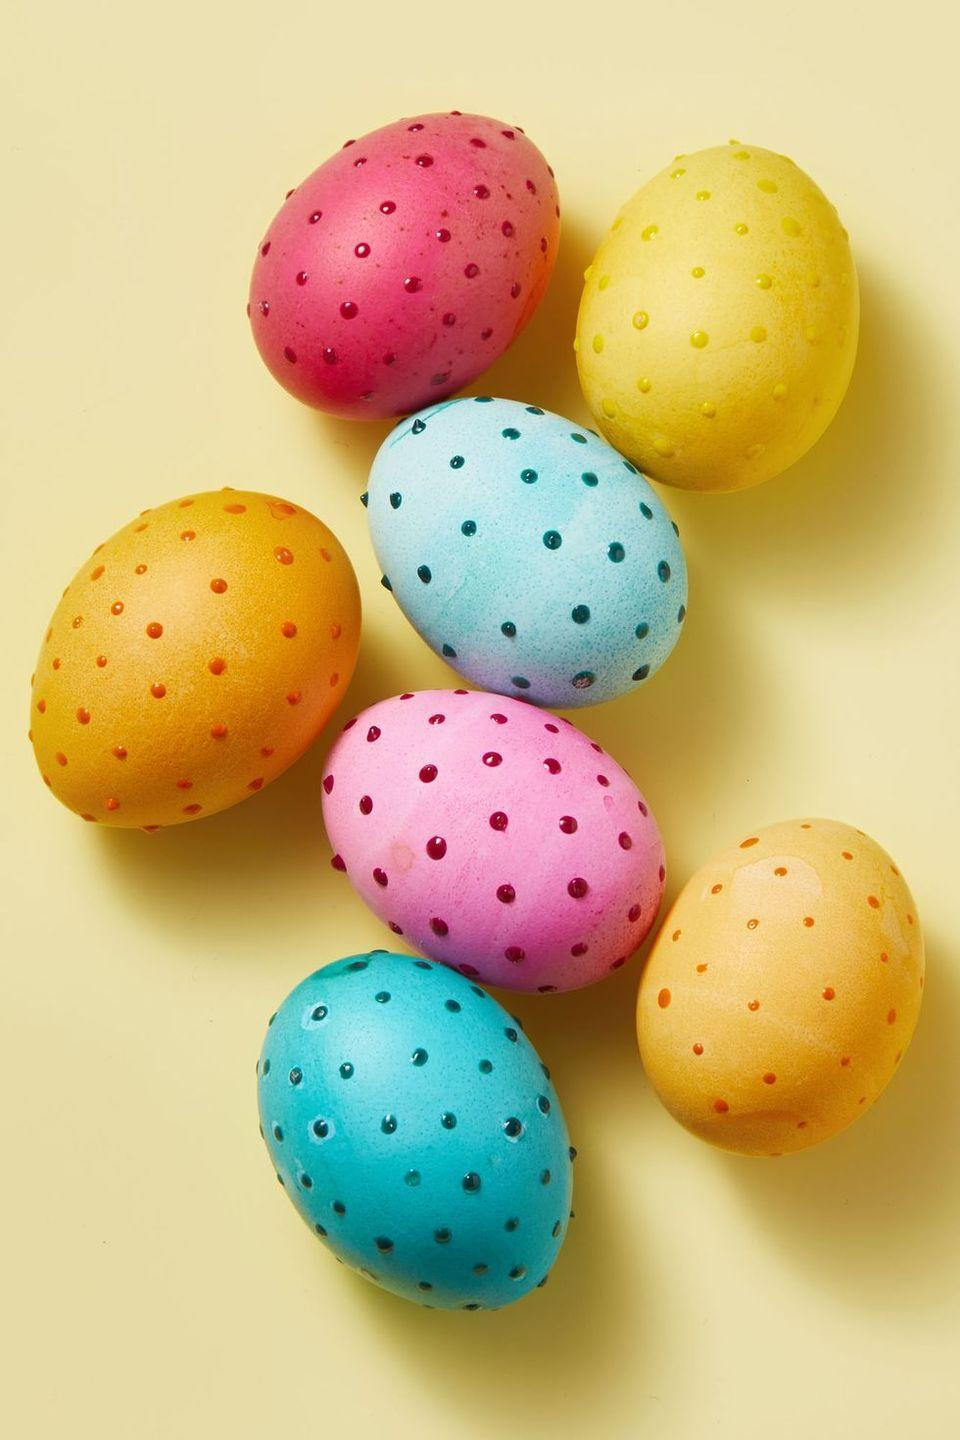 """<p>You can either use a traditional Easter egg dying technique or paint for the background color. But when it's time to add the dots, you'll want to invest in <a href=""""https://www.amazon.com/Tulip-Dimensional-Fabric-Paint-Puffy/dp/B000ILZAWY?tag=syn-yahoo-20&ascsubtag=%5Bartid%7C10055.g.35814277%5Bsrc%7Cyahoo-us"""" rel=""""nofollow noopener"""" target=""""_blank"""" data-ylk=""""slk:puff paint"""" class=""""link rapid-noclick-resp"""">puff paint</a> for a 3D effect. </p>"""